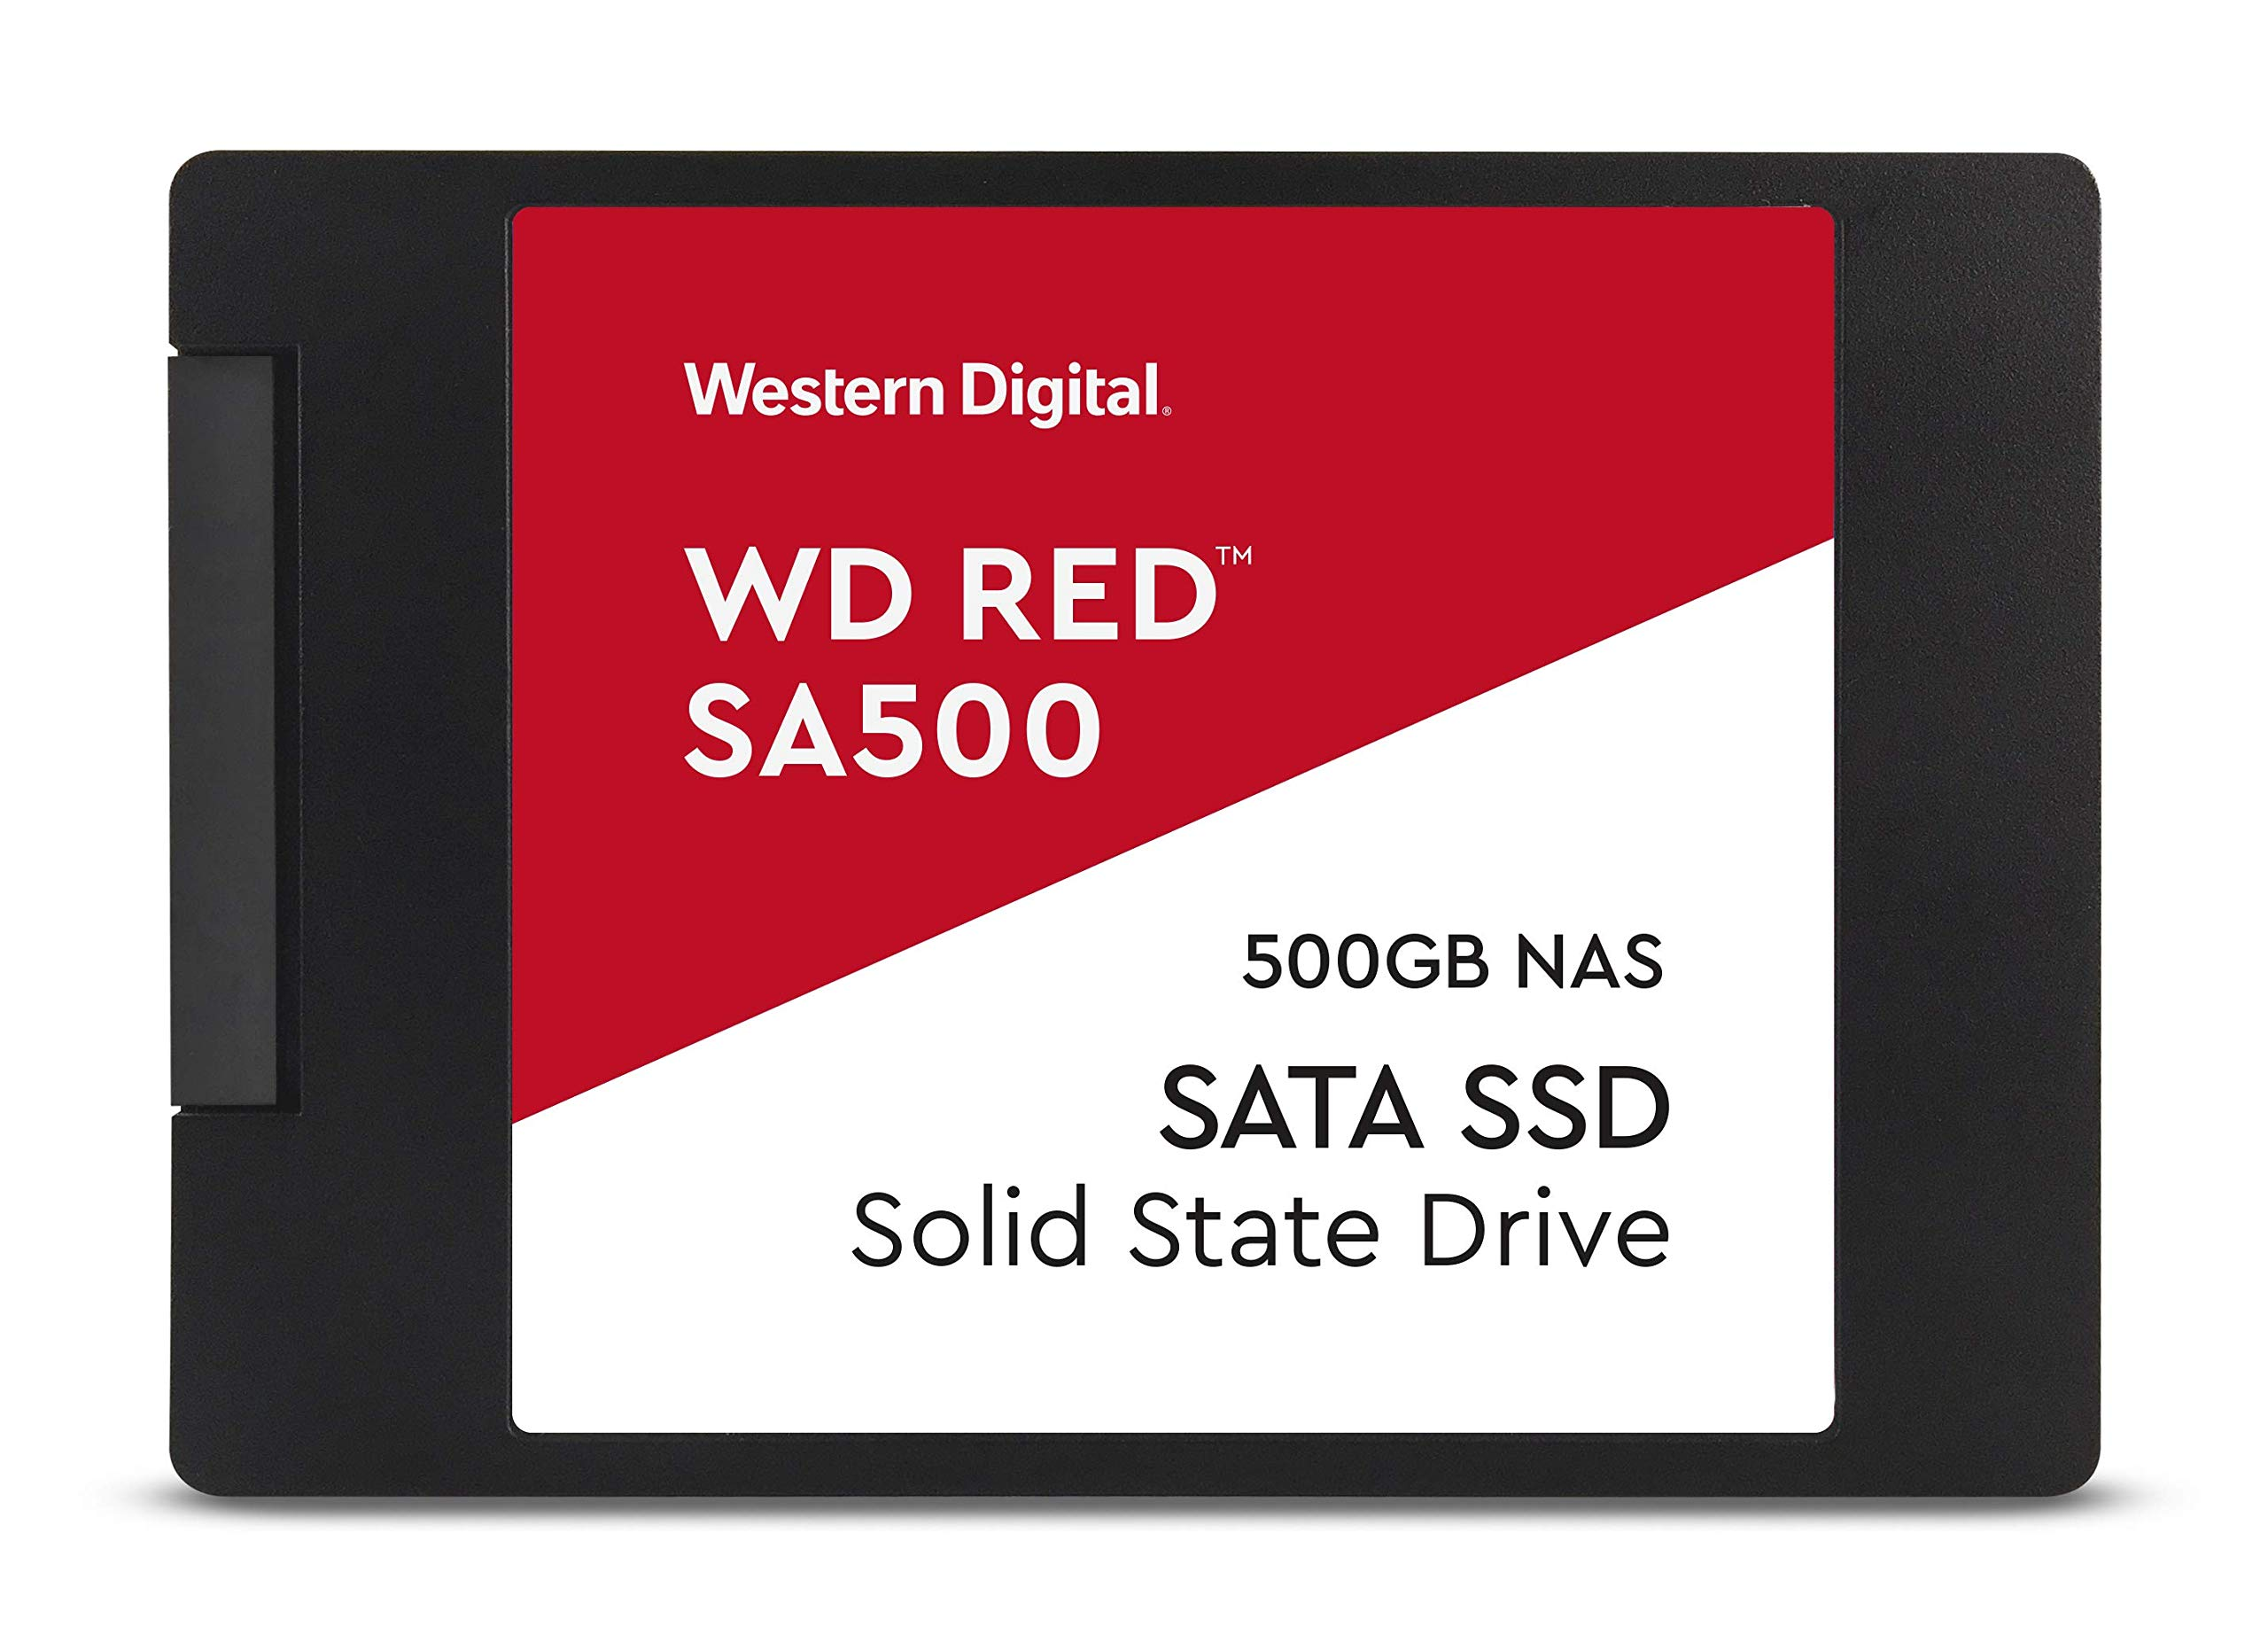 Ssd 500gb Sata Wd Red Sa500 Nas 500gb 3d Nand 6 Gb/s 2.5in /